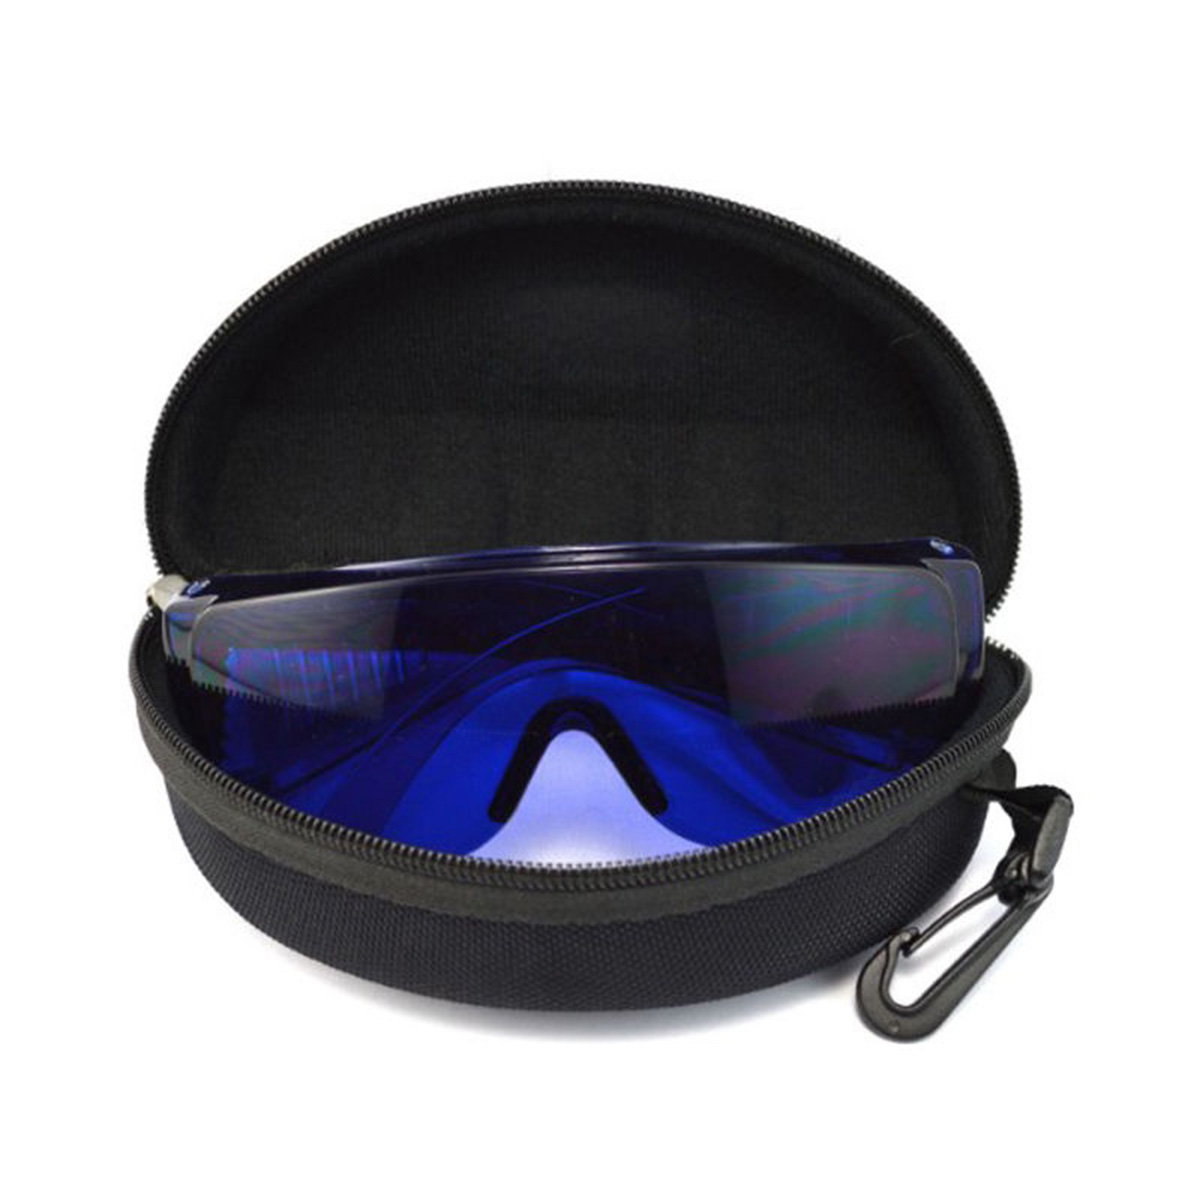 NEW Golfer Golf-ball Finder for Easy Ball Detection finding Glasses With Box Workplace Safety  Eye Protection golf ball sample display case